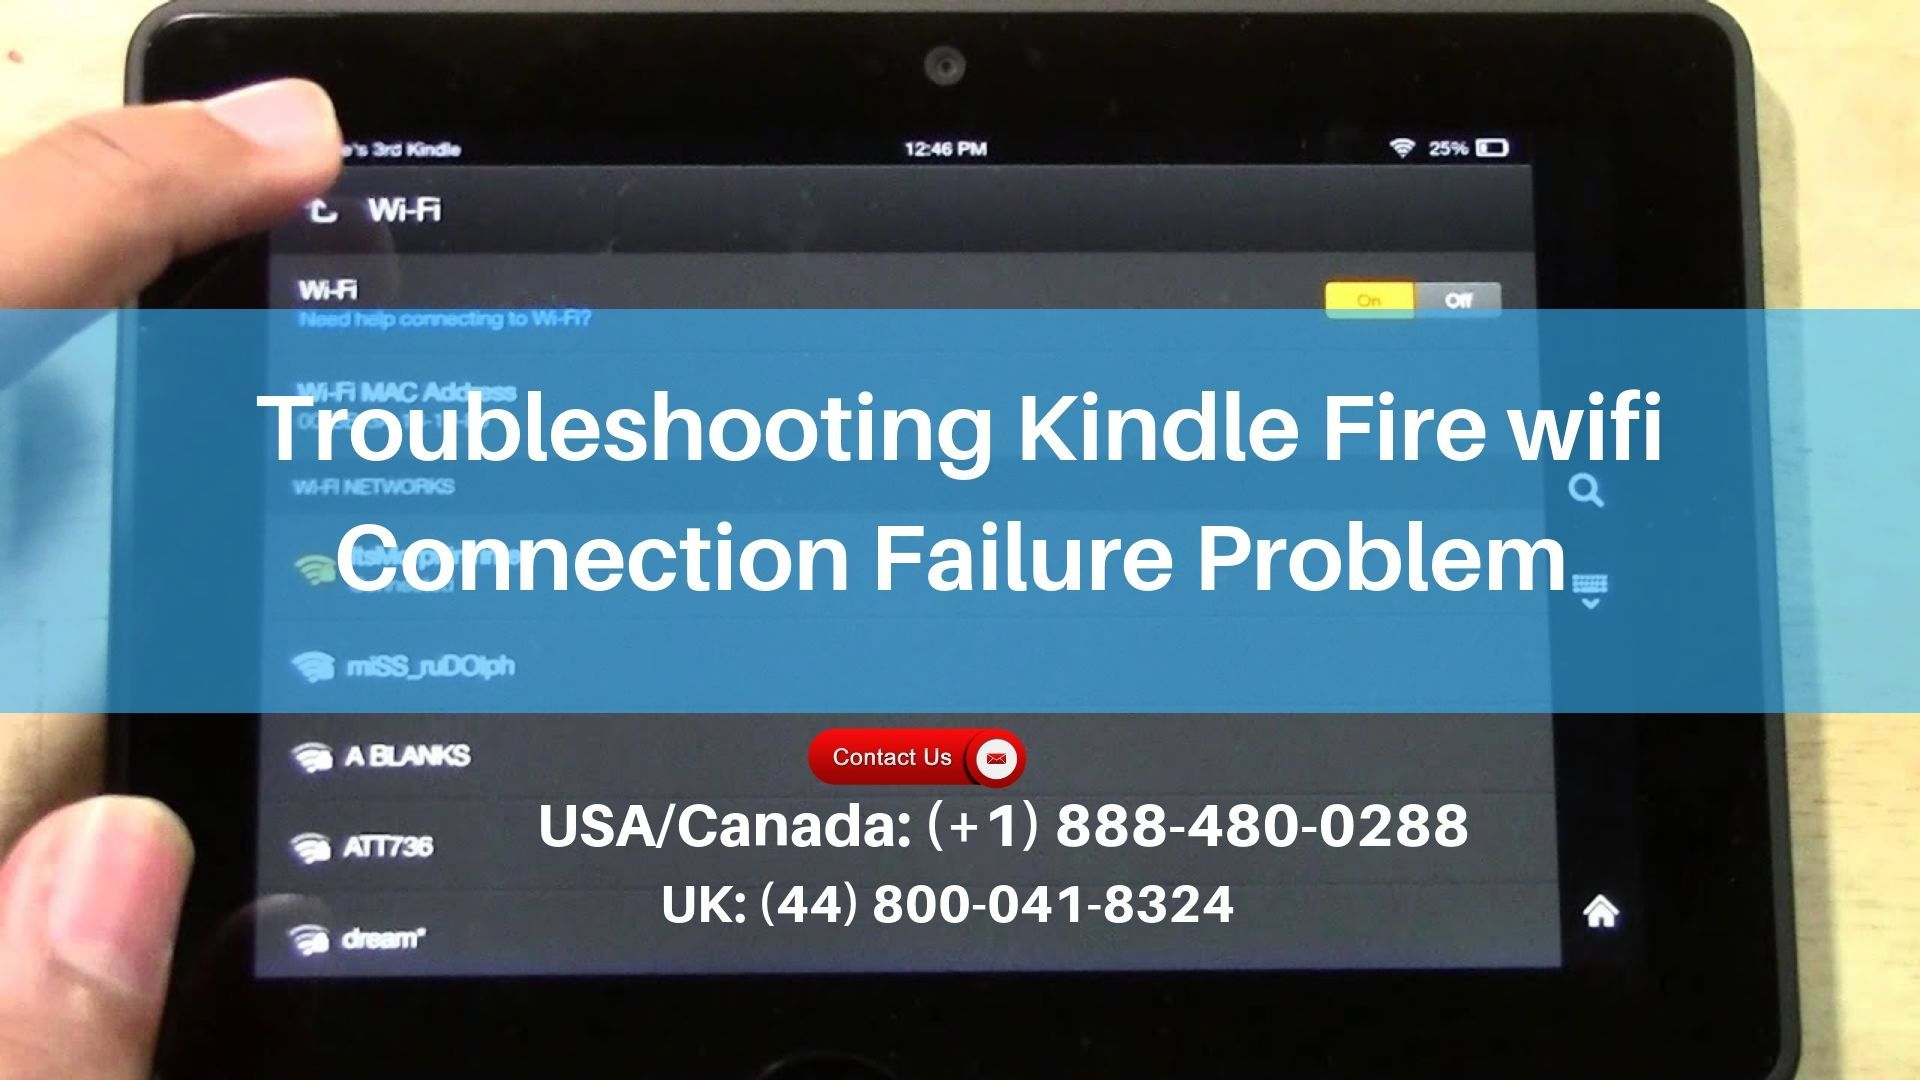 Troubleshooting Kindle Fire Wifi Connection Failure Problem